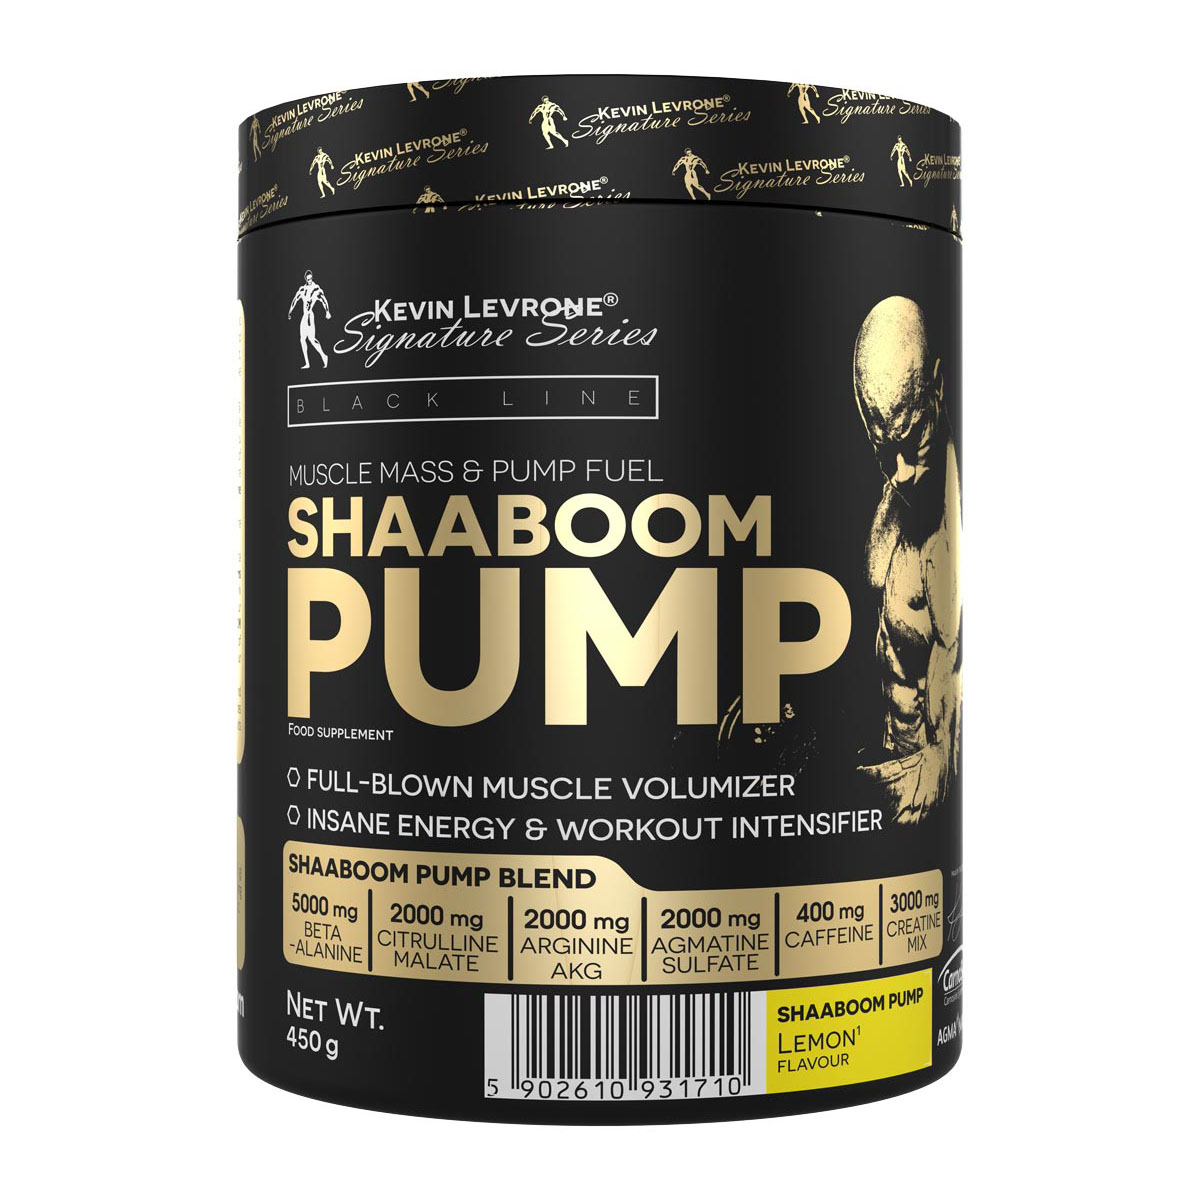 KEVIN LEVRONE Black Line Shaaboom Pump 385g